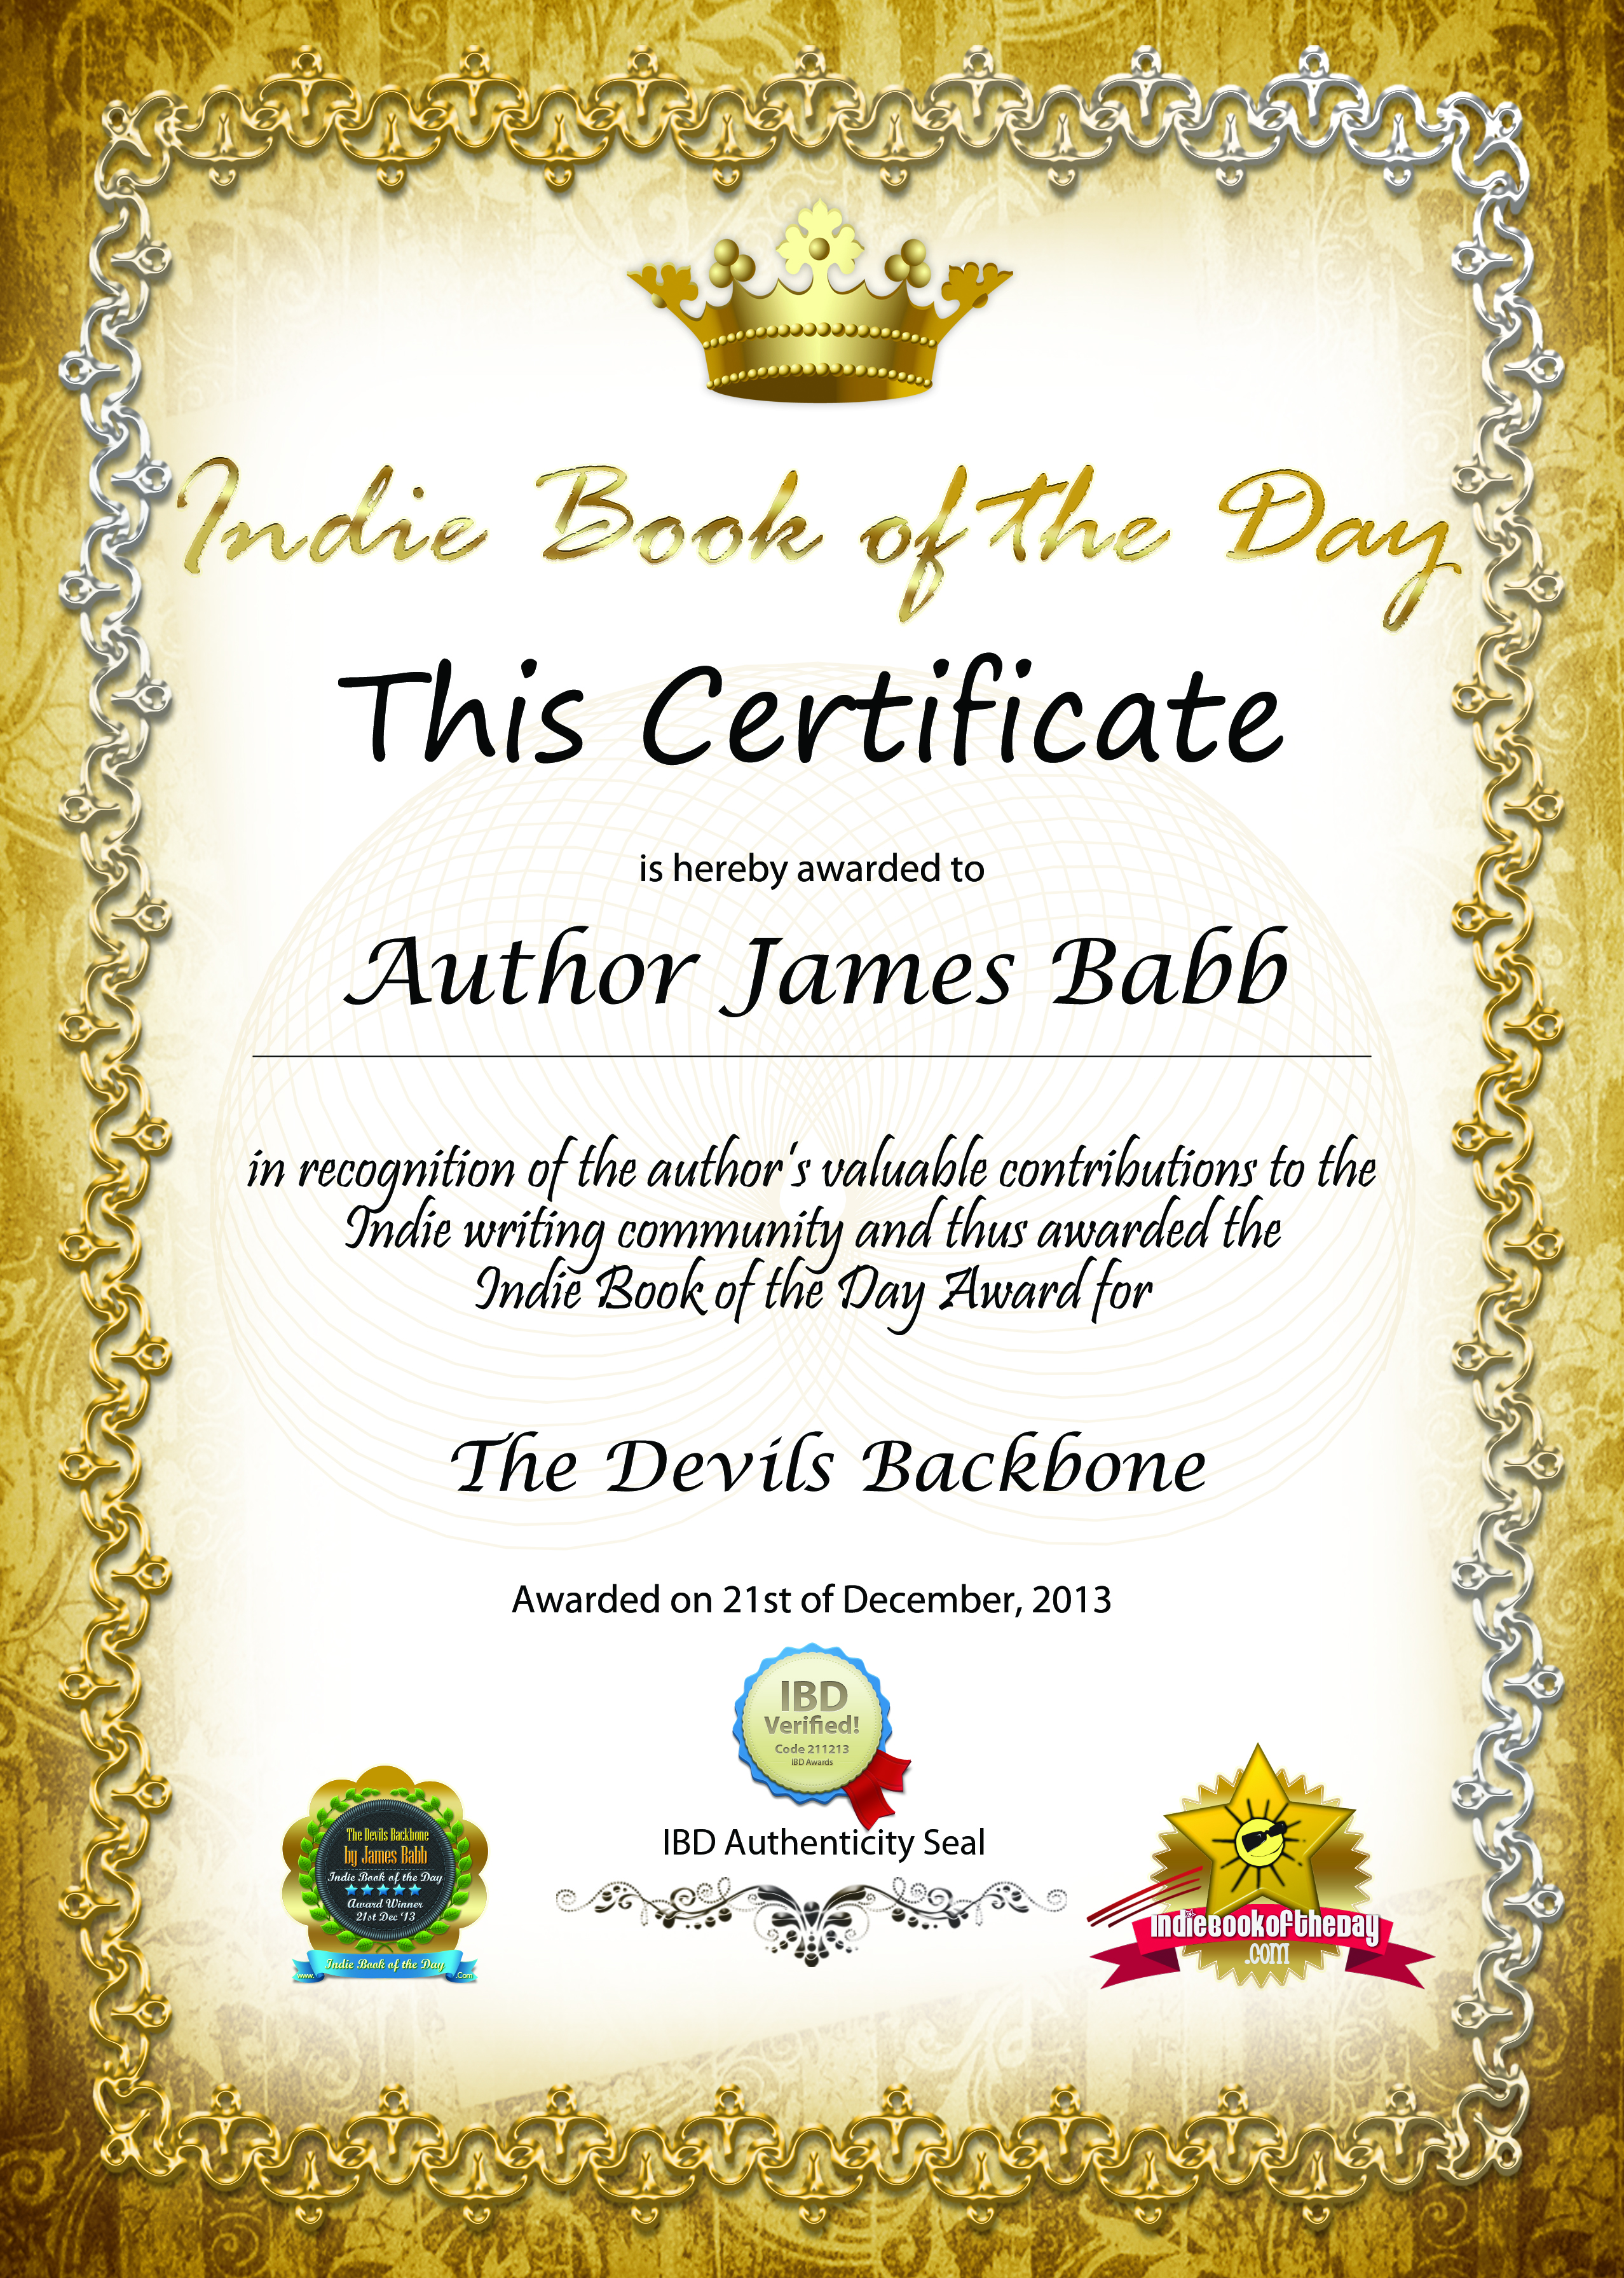 The devils backbone wins indie book award james babb royal certificates yadclub Images